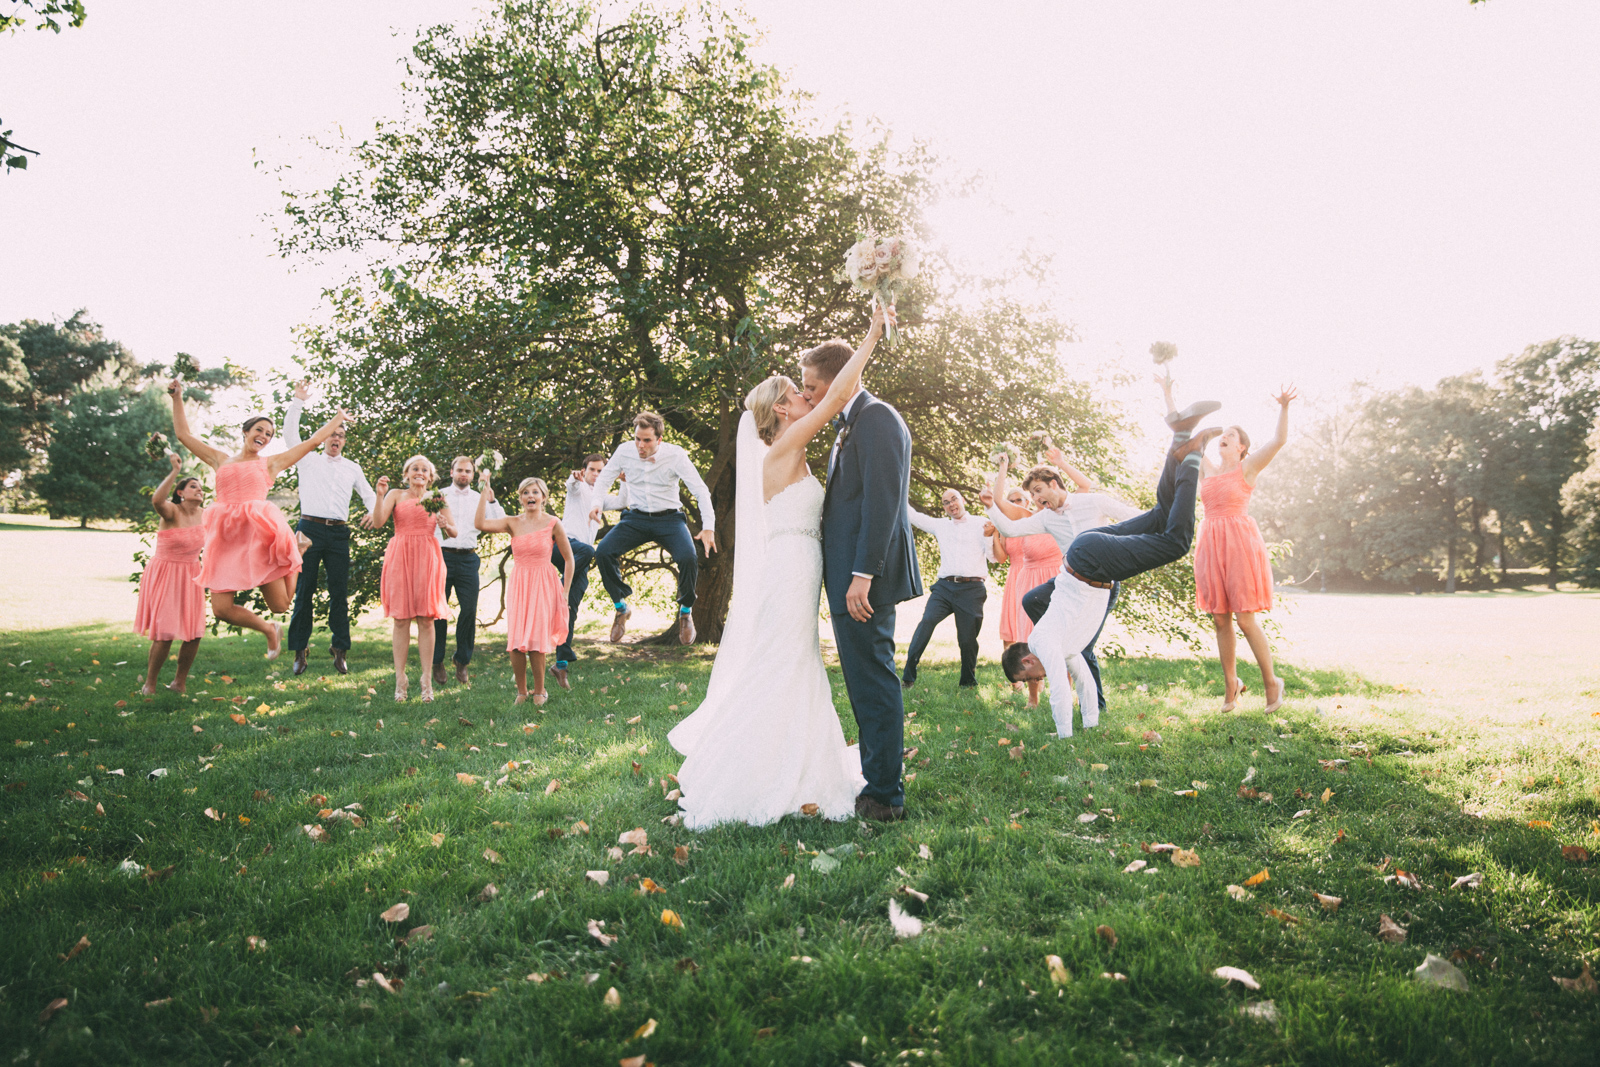 Bride and groom kiss while wedding party goes nuts